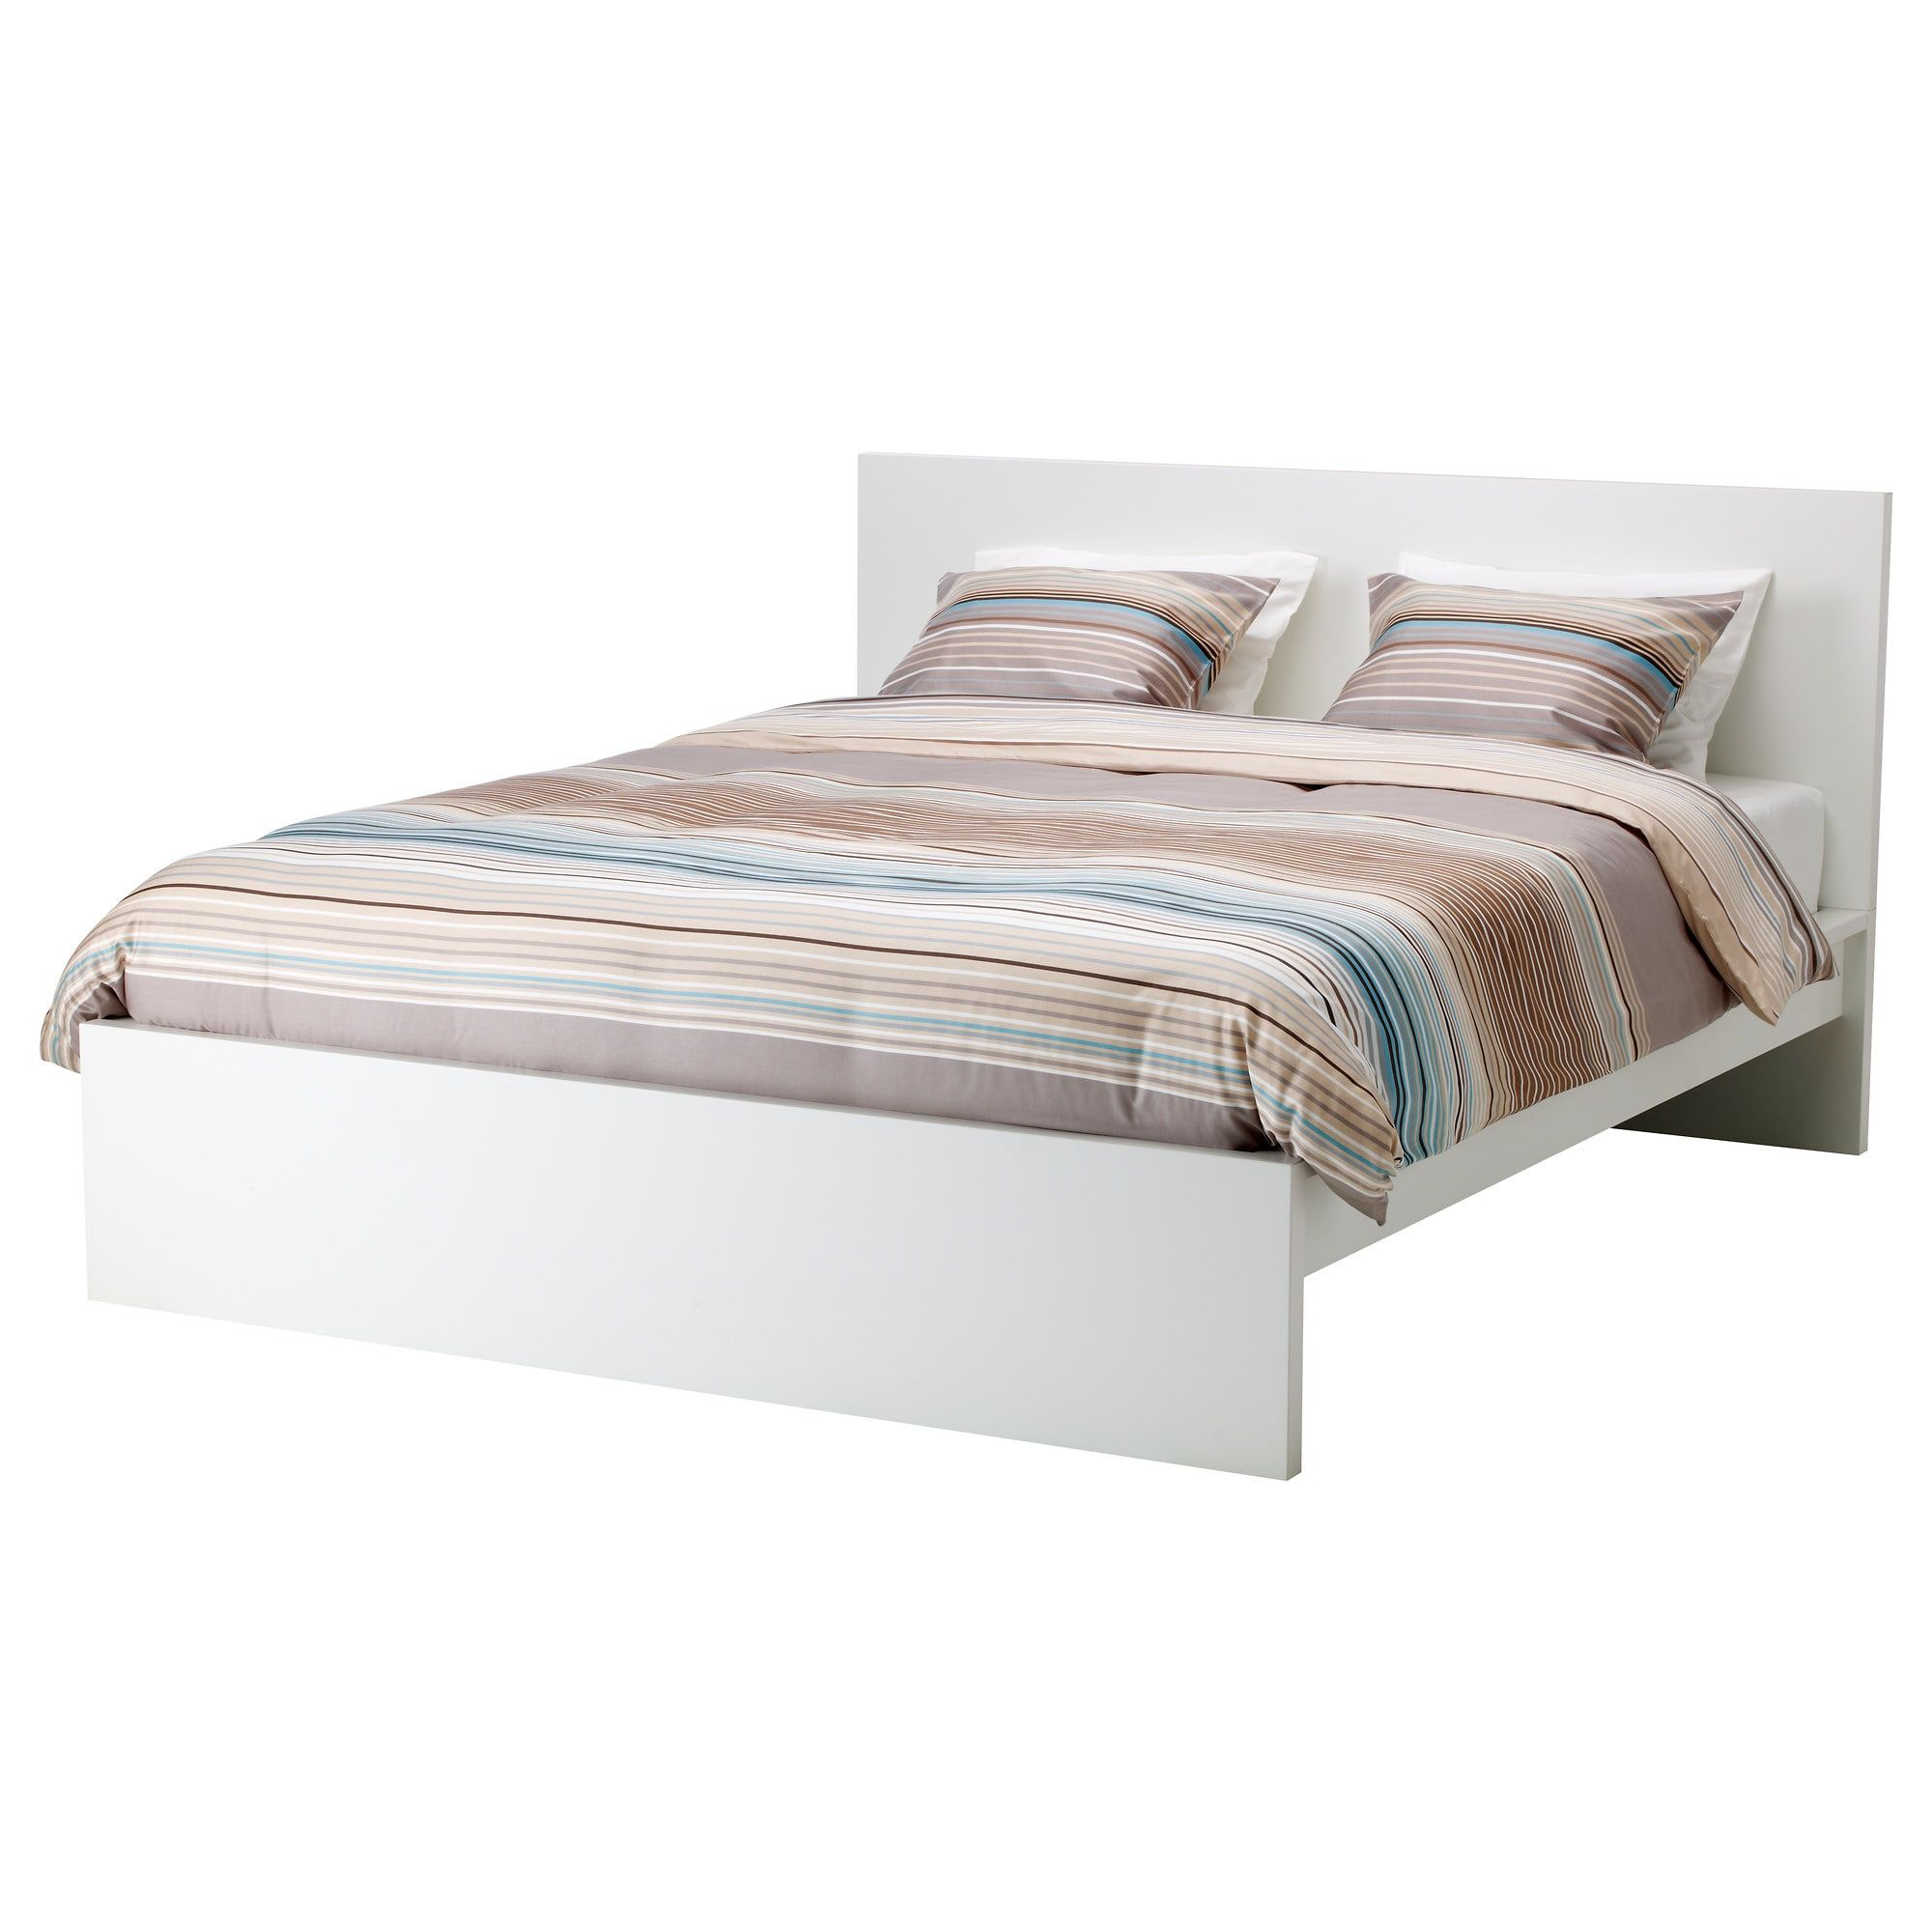 Malm Bed Frame High King White Ikea 240